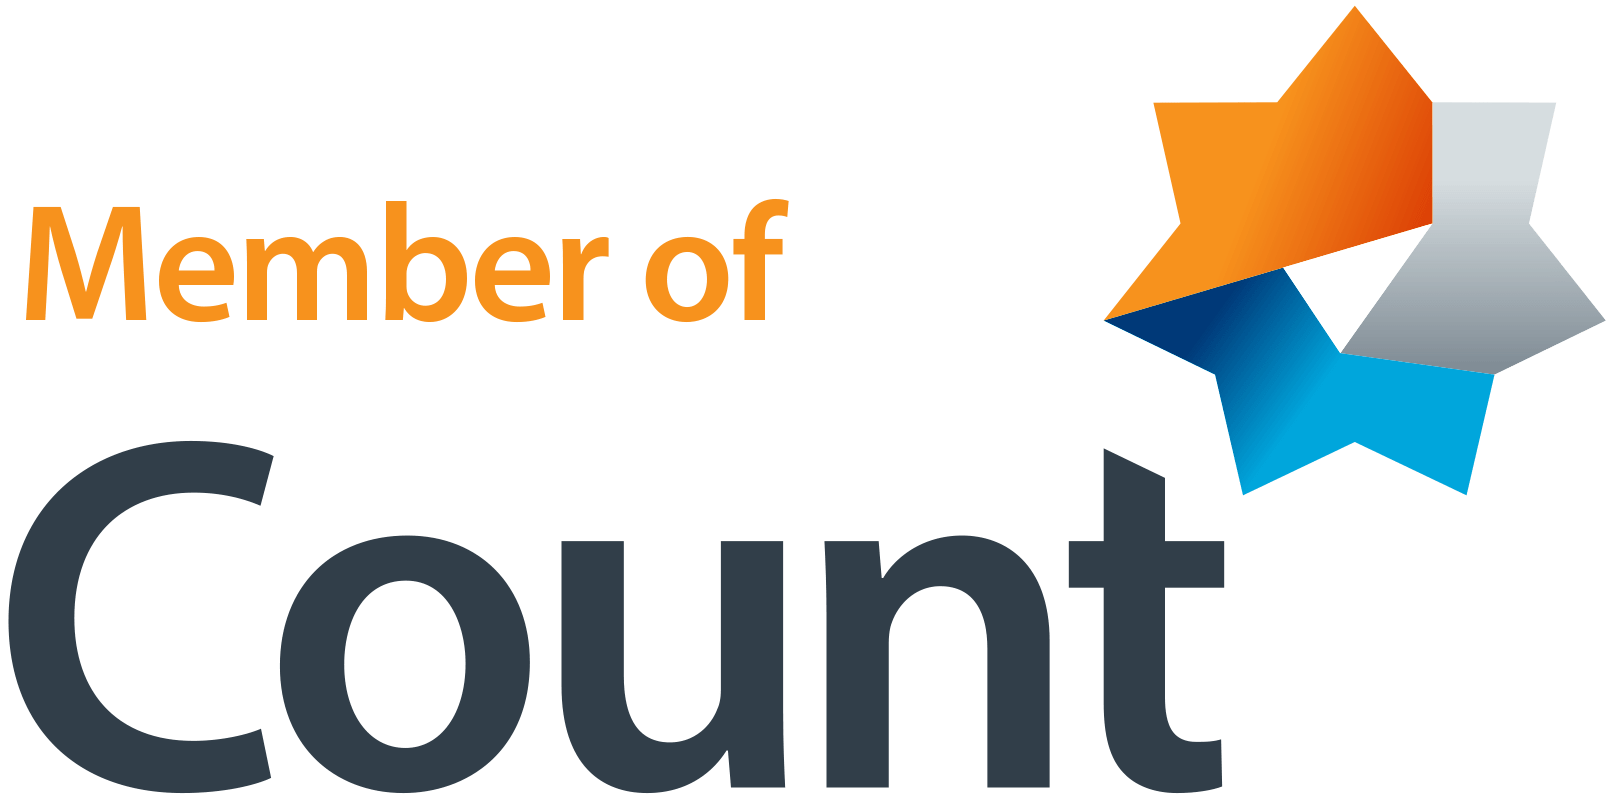 Member-of-Count-colour